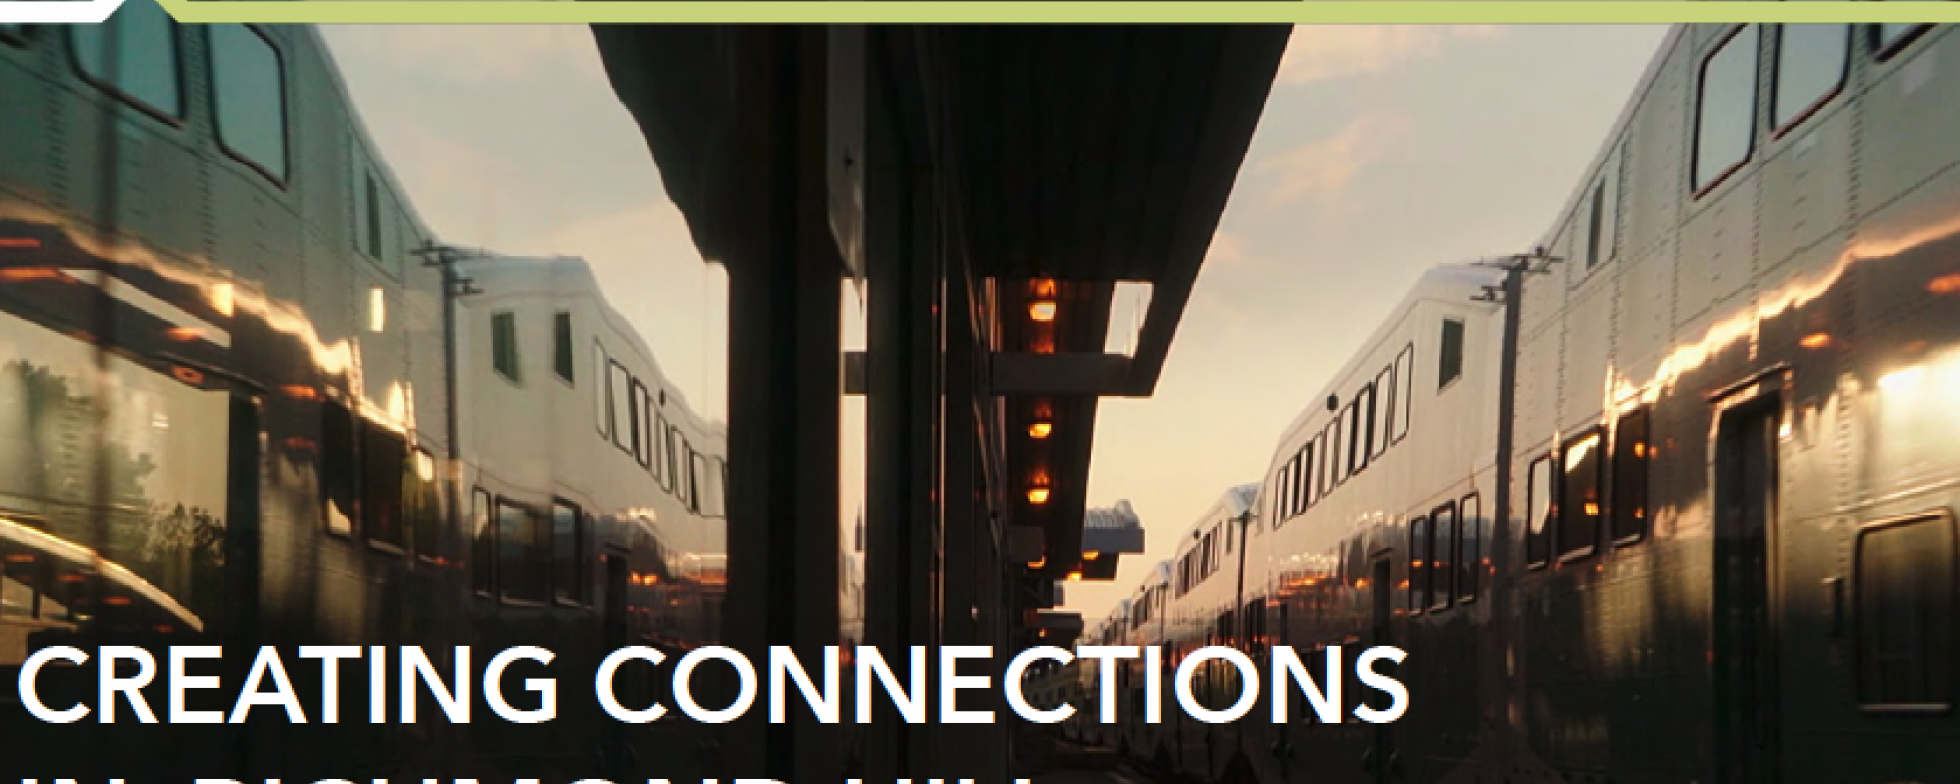 Creating Connections in Richmond Hill presentation cover page